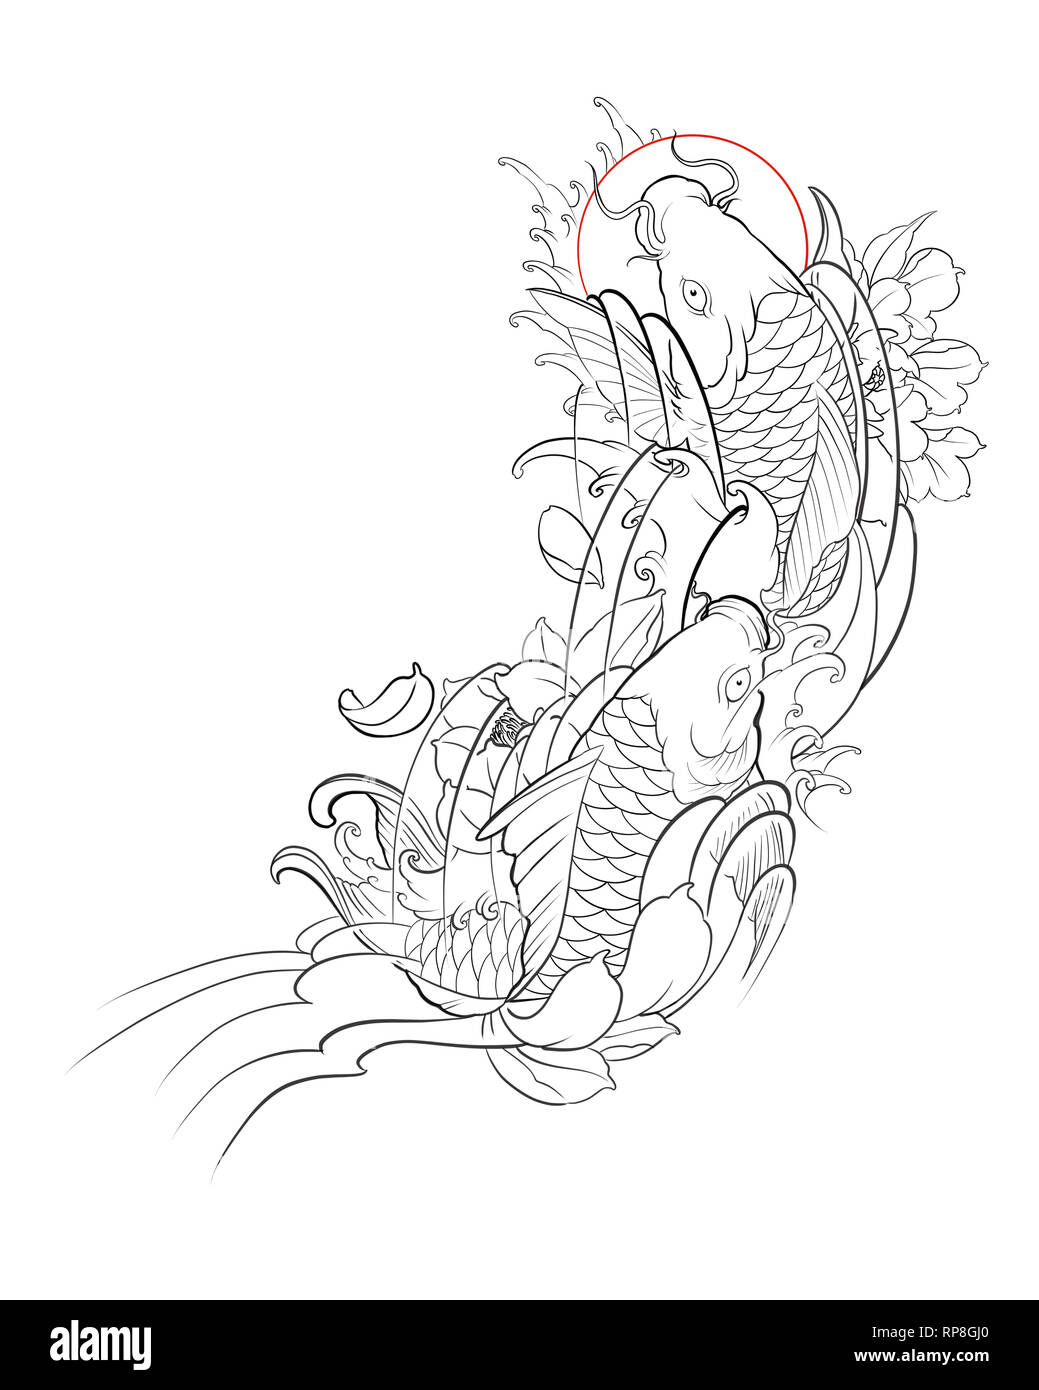 Hand Drawn Outline Of Koi Fish With Lotus Flower And Water Wave